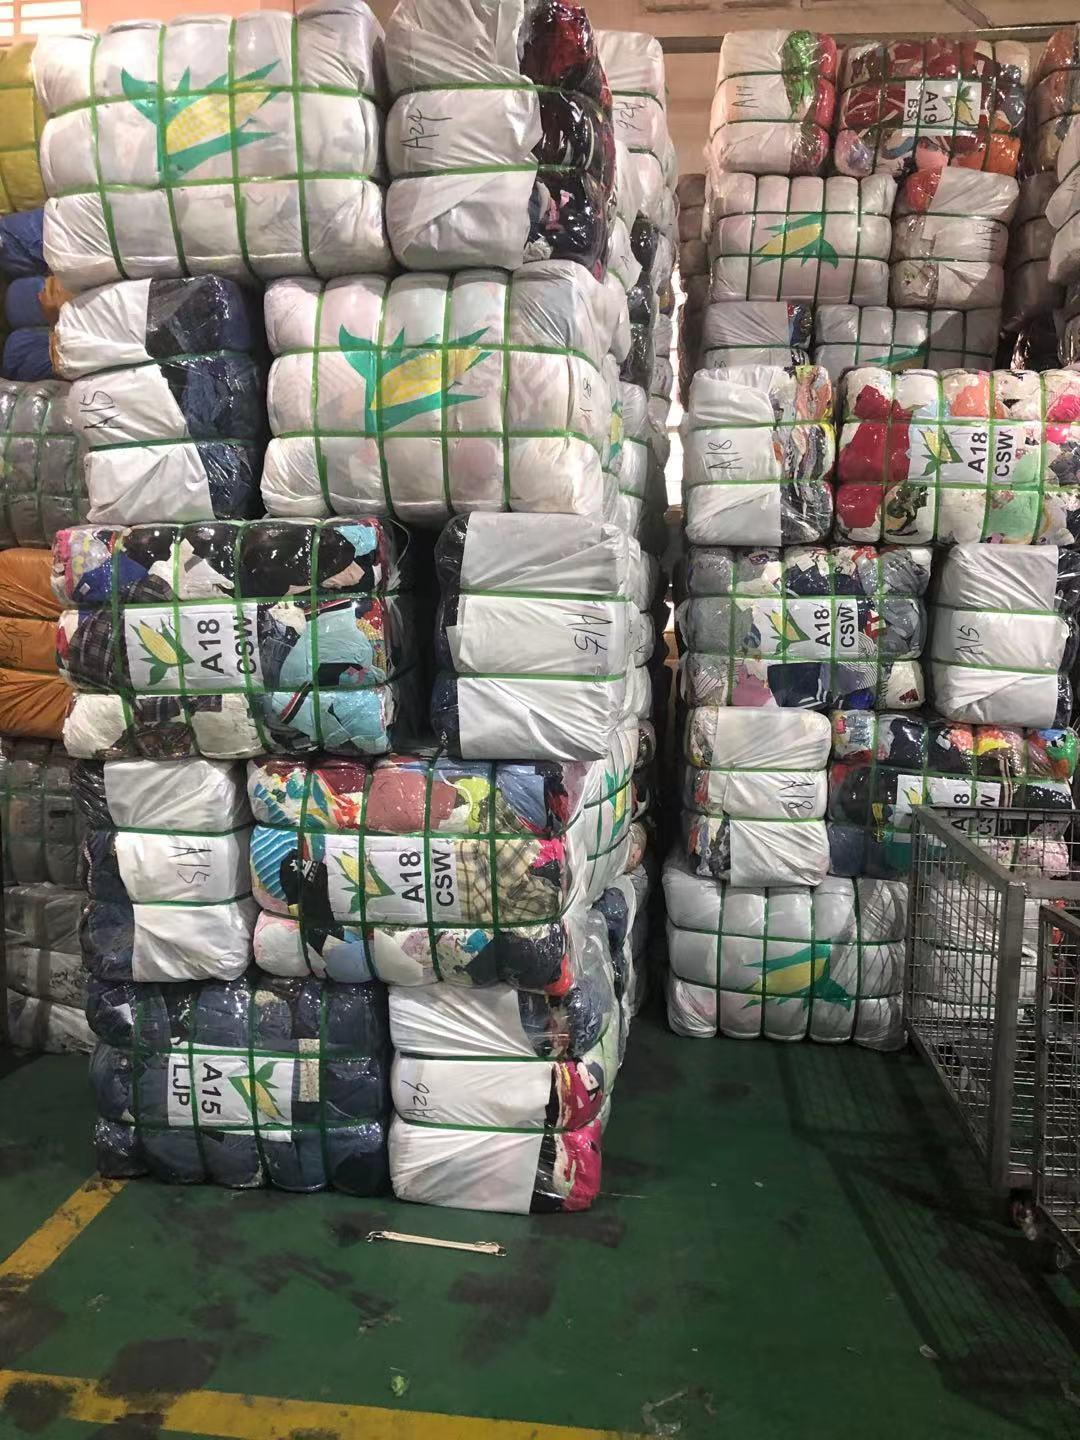 Read more about the article Mabhero smuggler on the run as police confiscate 353 smuggled bales